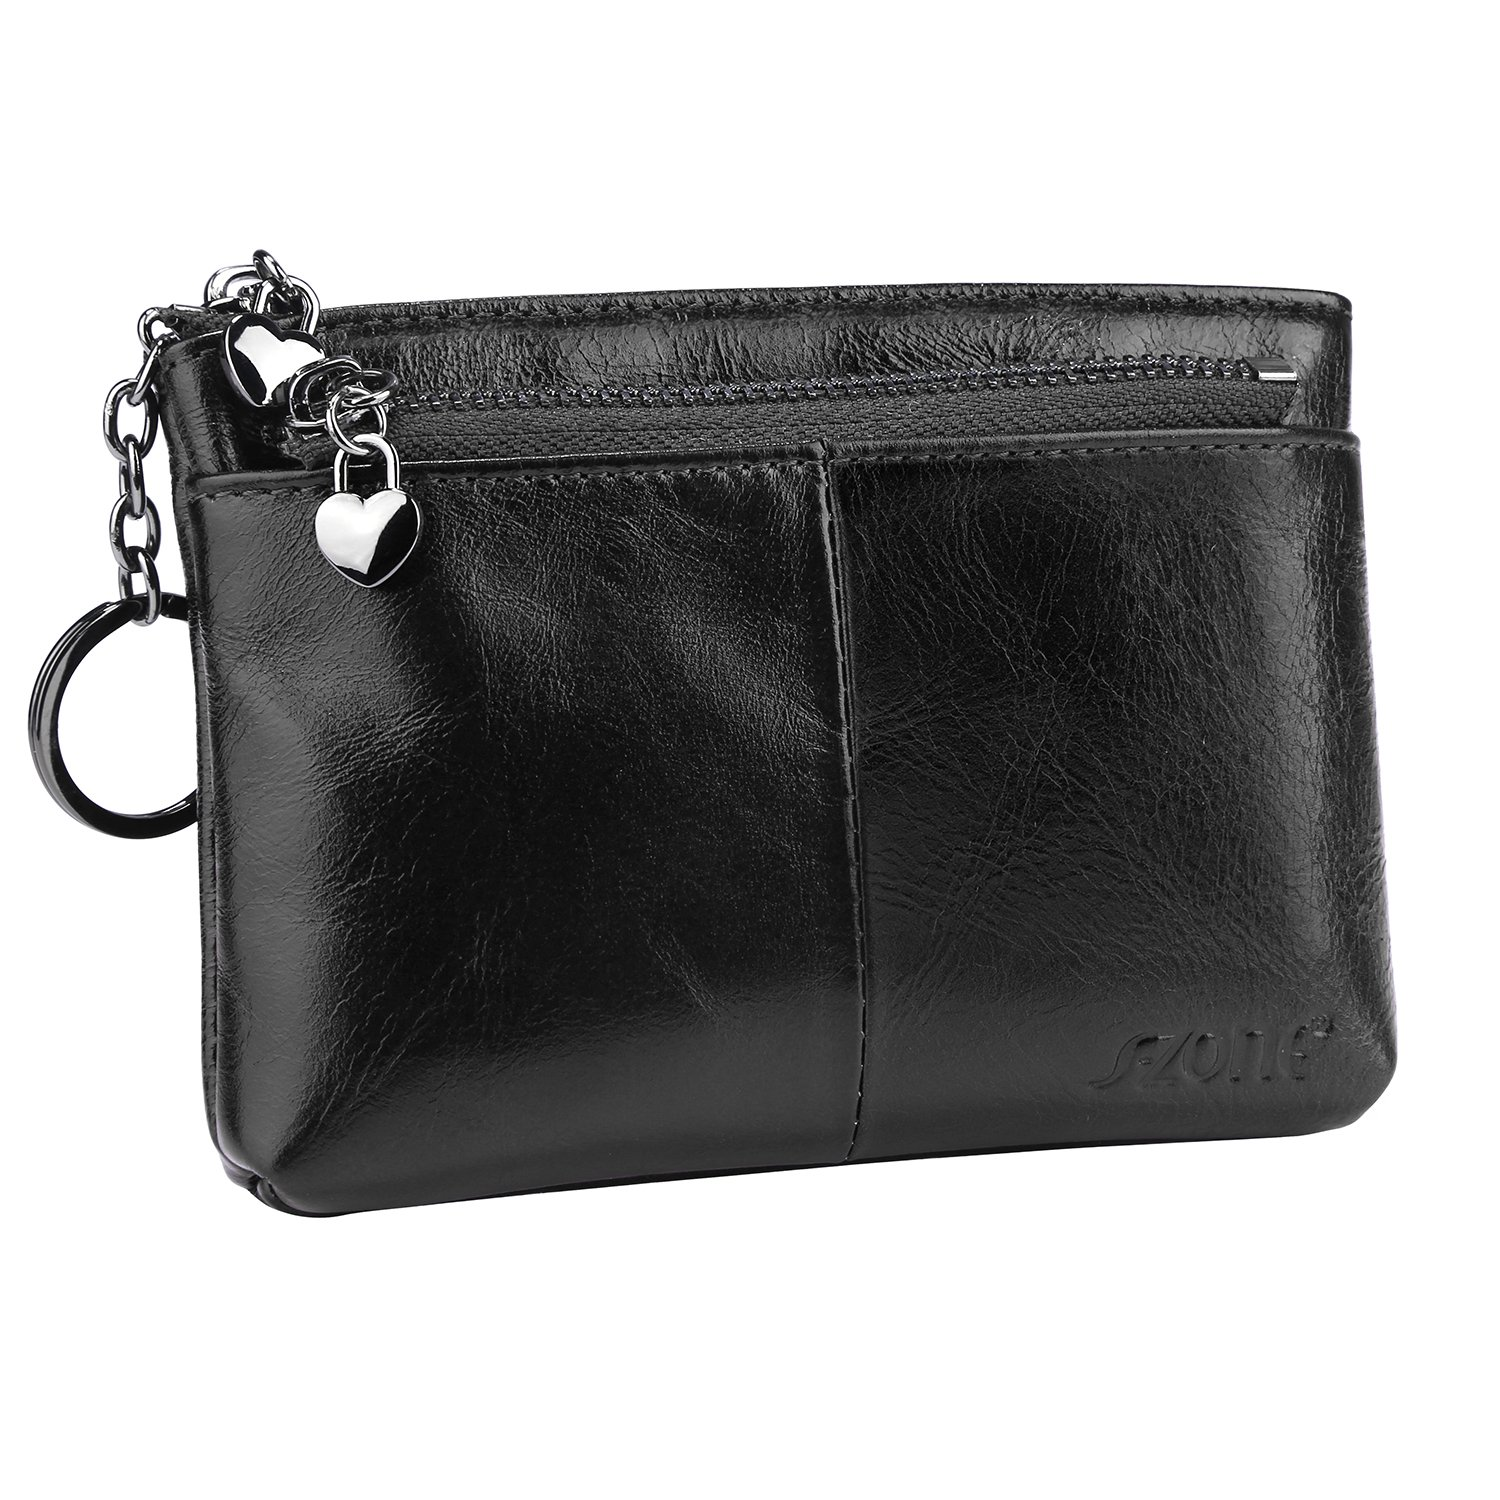 dc0d56cd63 Amazon.com  S-ZONE Women s Genuine Leather Mini Wallet Change Coin Purse  Card Holder with Key Ring (Black)  Clothing